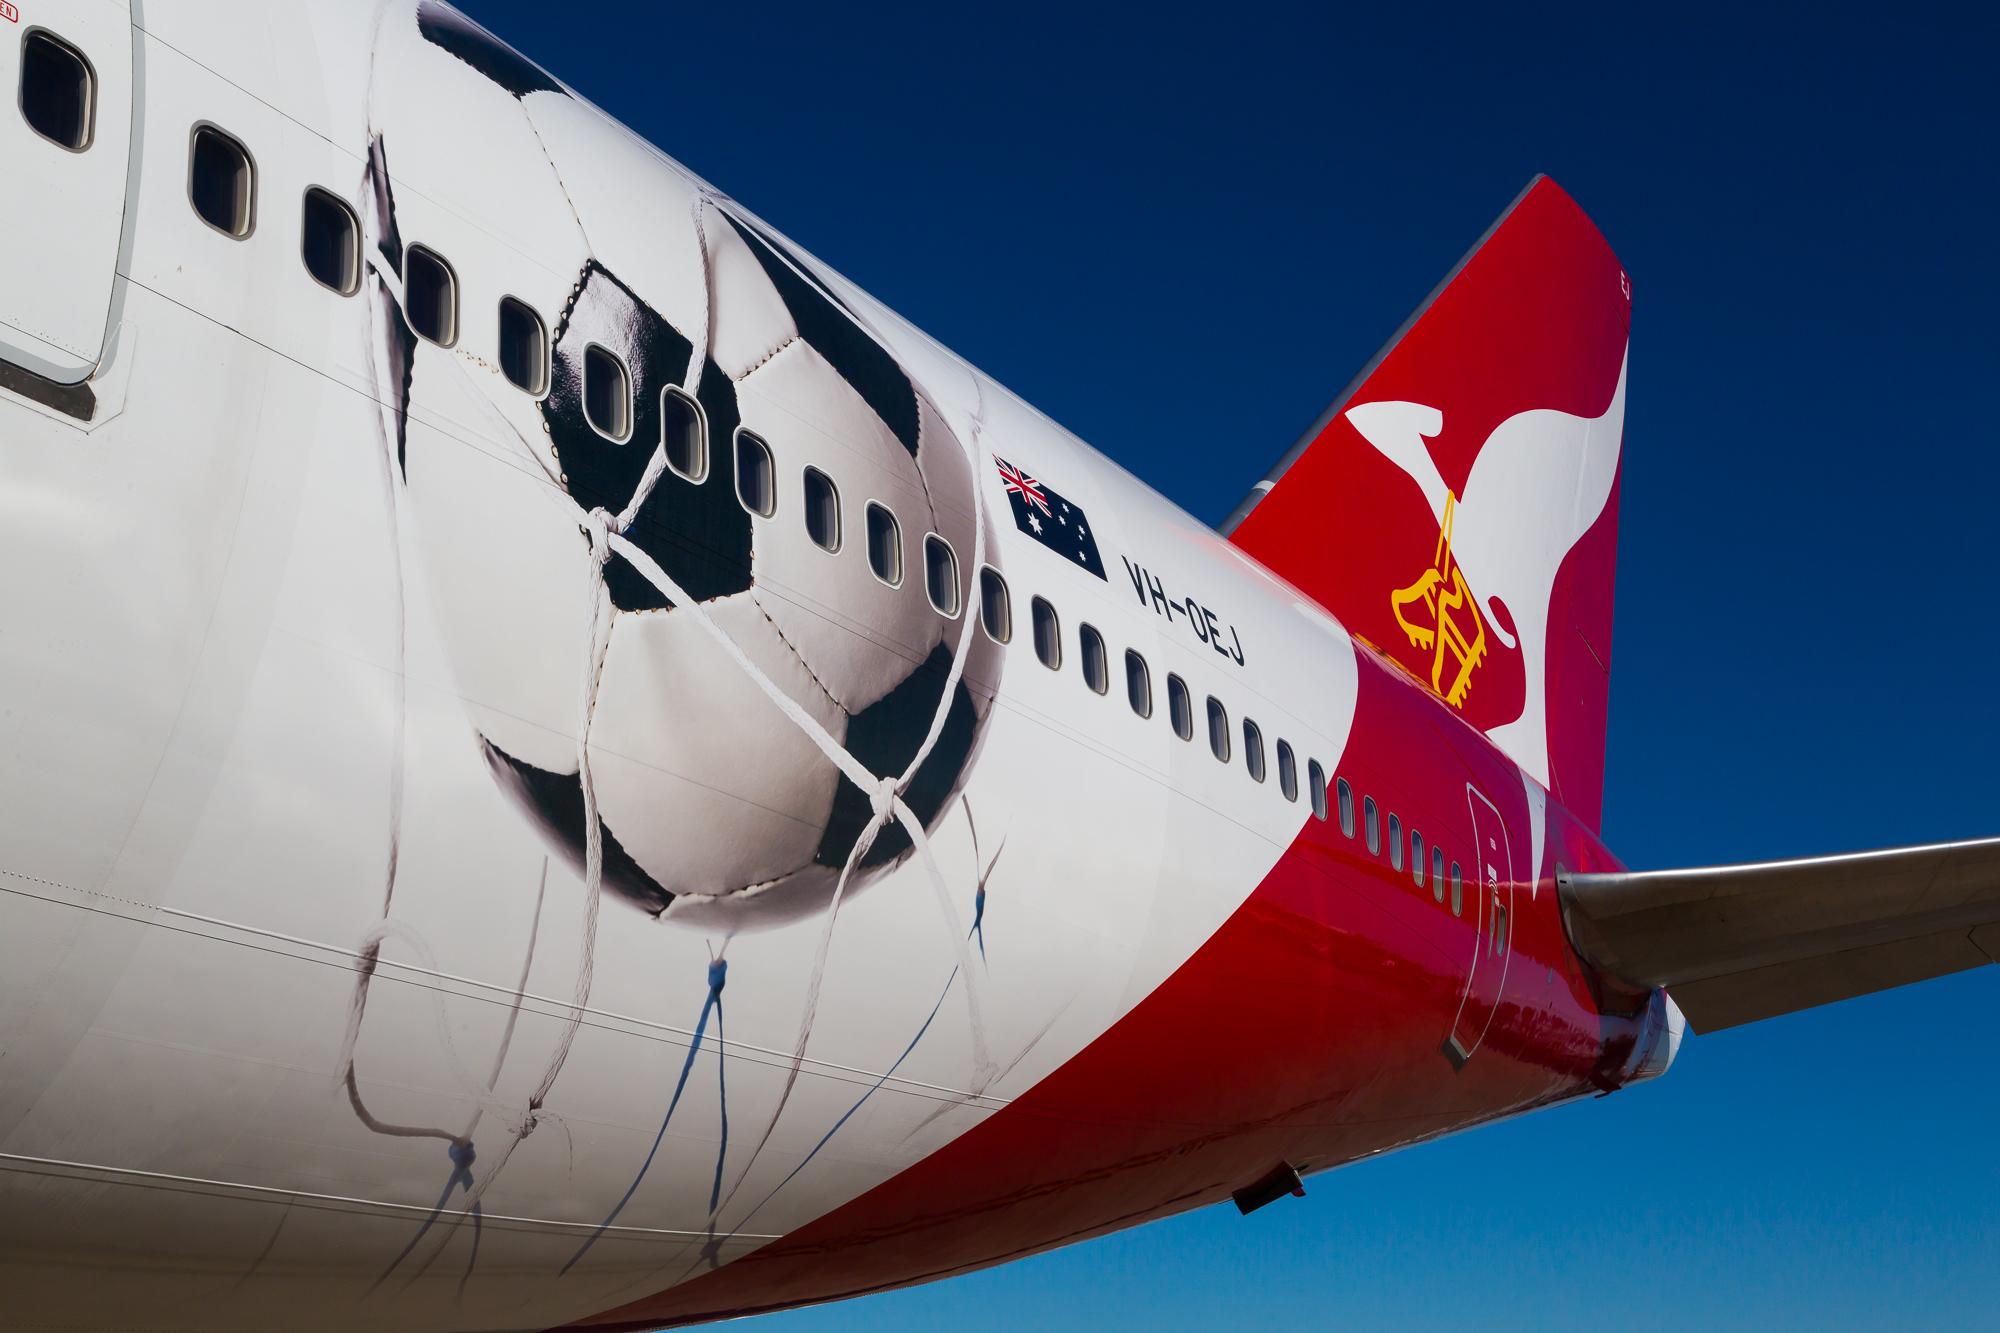 Football (soccer) might not be Australia's top sport, but Qantas seems to take it pretty seriously. Picture: Qantas